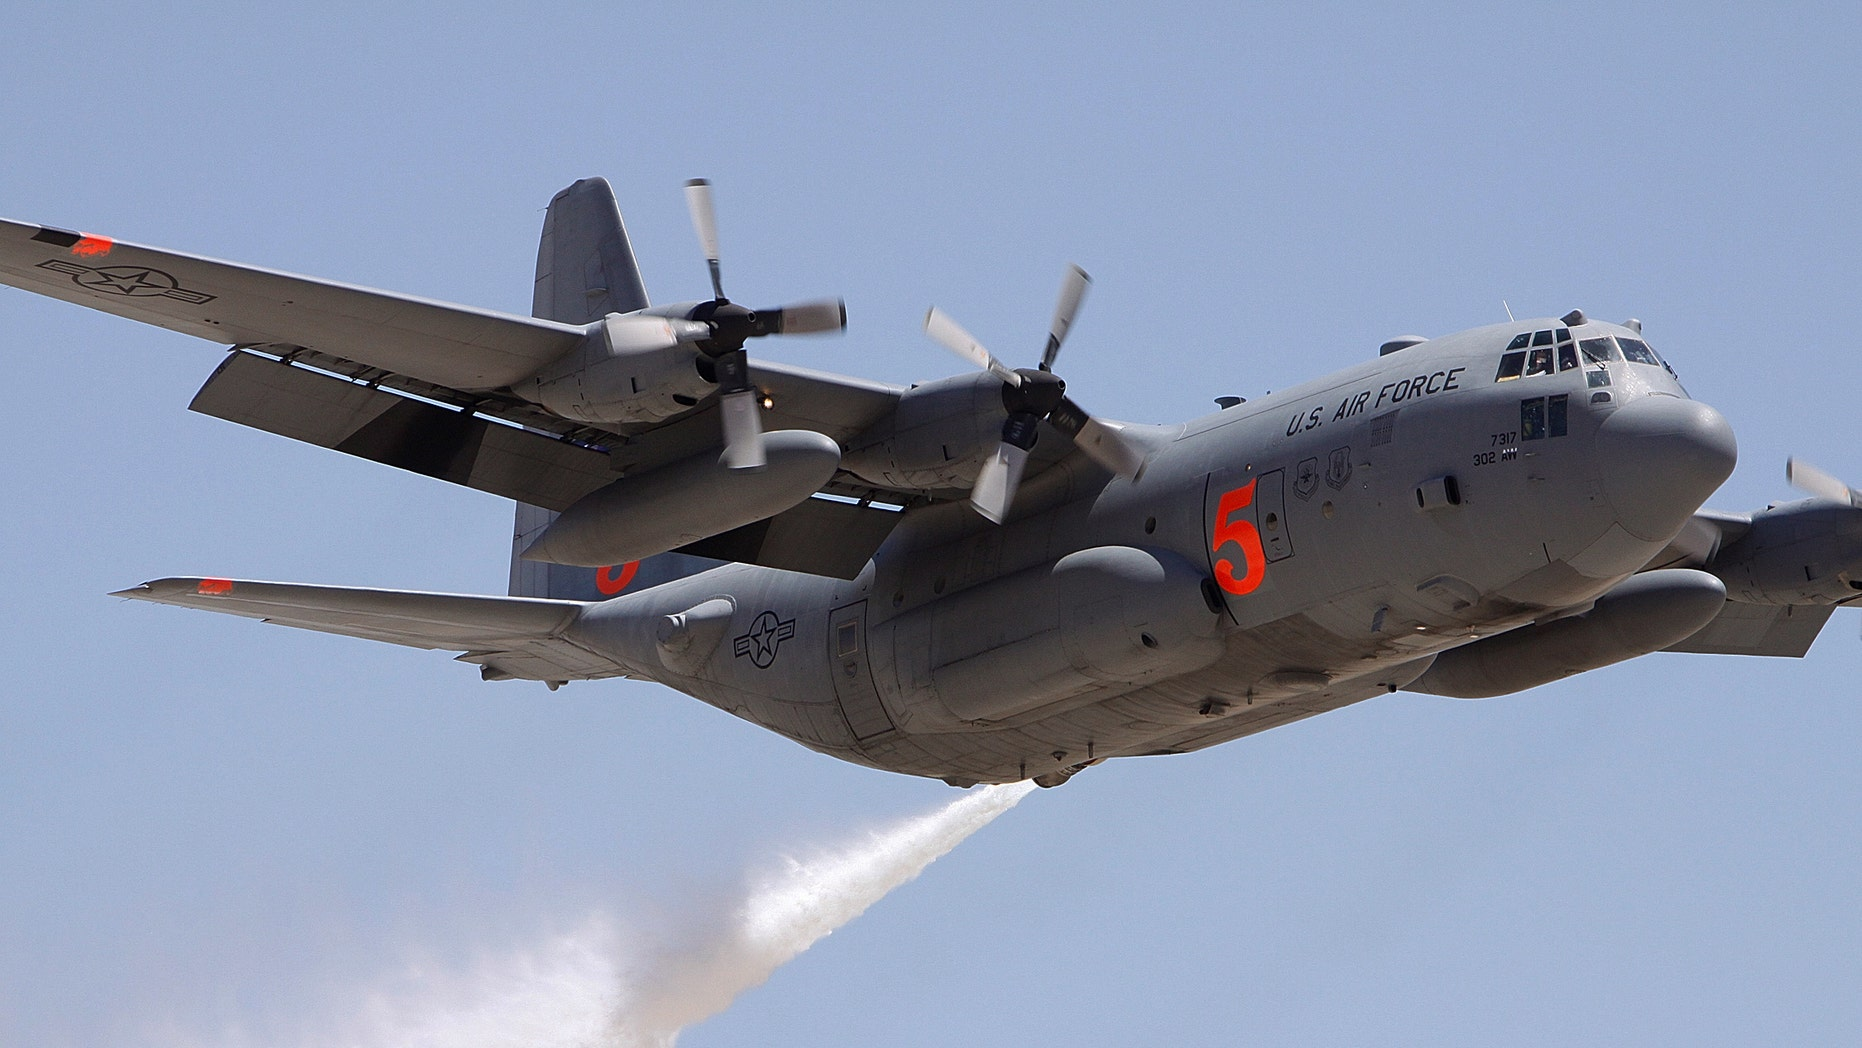 FILE 2009: Colorado Reserve C-130 drops water on a target during a certification flight at the Tucson International Airport.